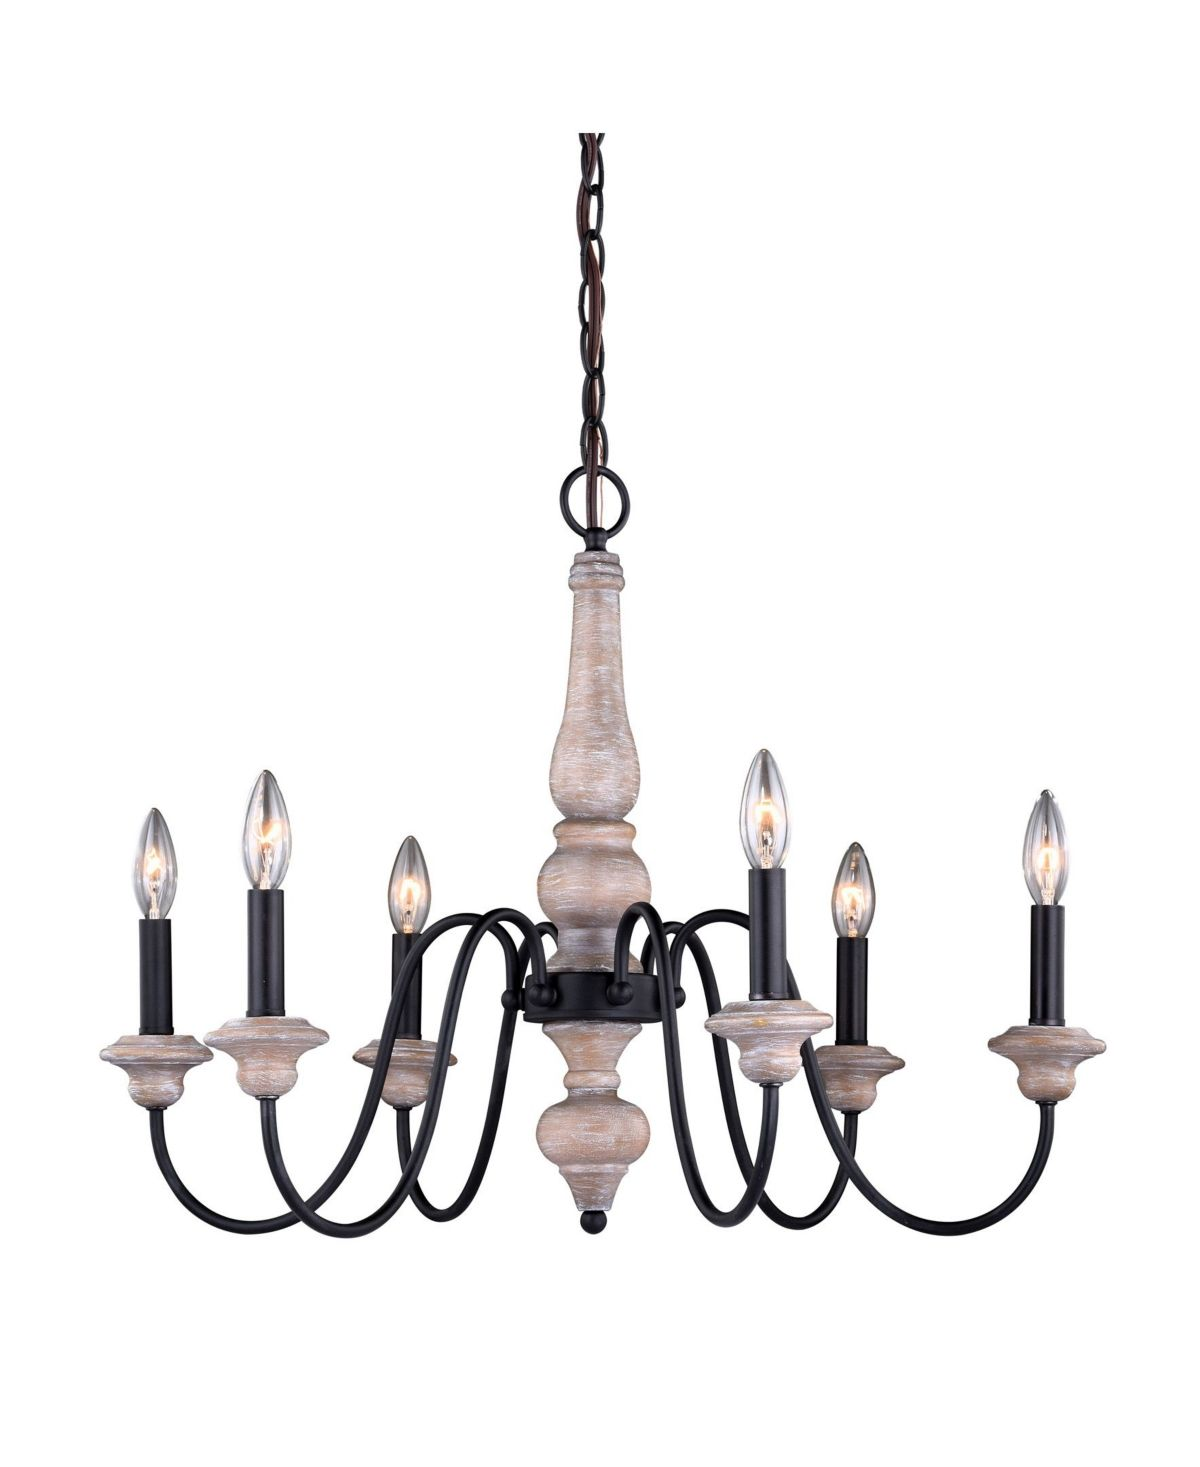 Vaxcel Georgetown Wood And Farmhouse 6 Light Chandelier Reviews Home Macy S Vaxcel Chandelier Lighting Chandelier